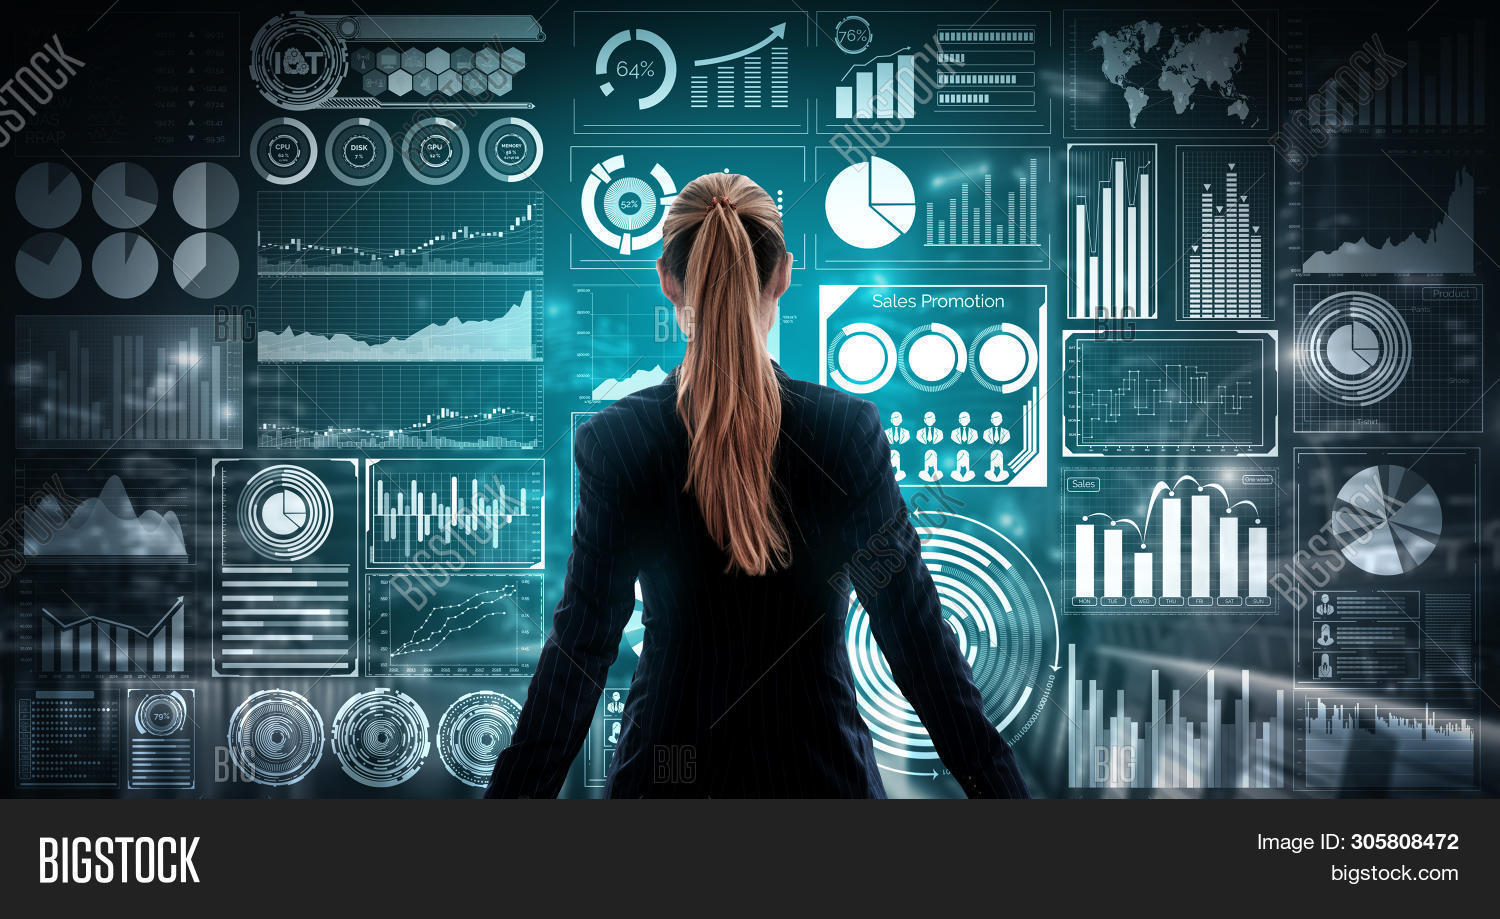 abstract,accounting,analysis,analyst,analytics,big,business,businessman,businesspeople,businesswoman,communication,computer,cyber,data,diagram,digital,economic,evolution,exchange,finance,financial,fintech,future,group,information,intelligence,internet,investment,iot,kpi,laptop,management,market,marketing,meeting,network,people,research,risk,security,stock,strategy,summary,system,tablet,tech,technology,thinking,using,virtual